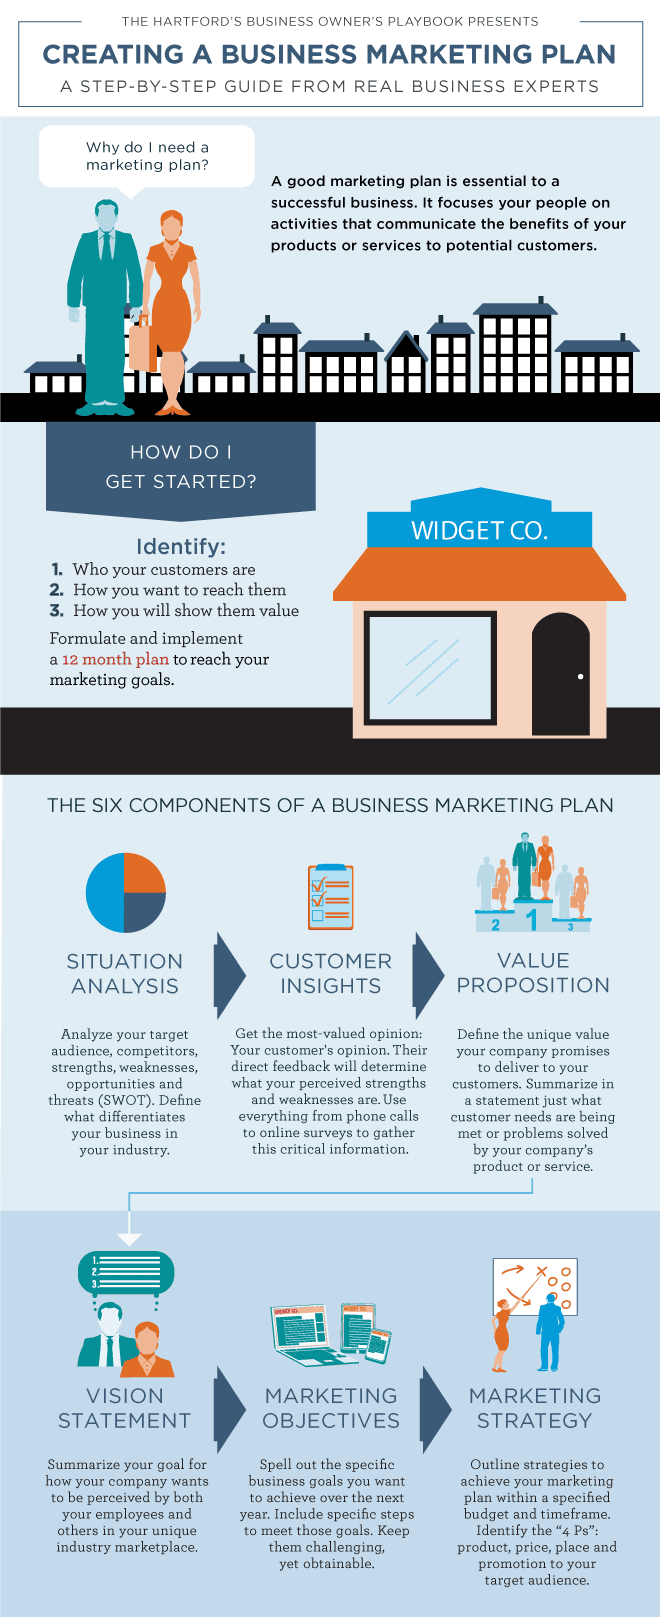 Creating a Business Marketing Plan #infograohic